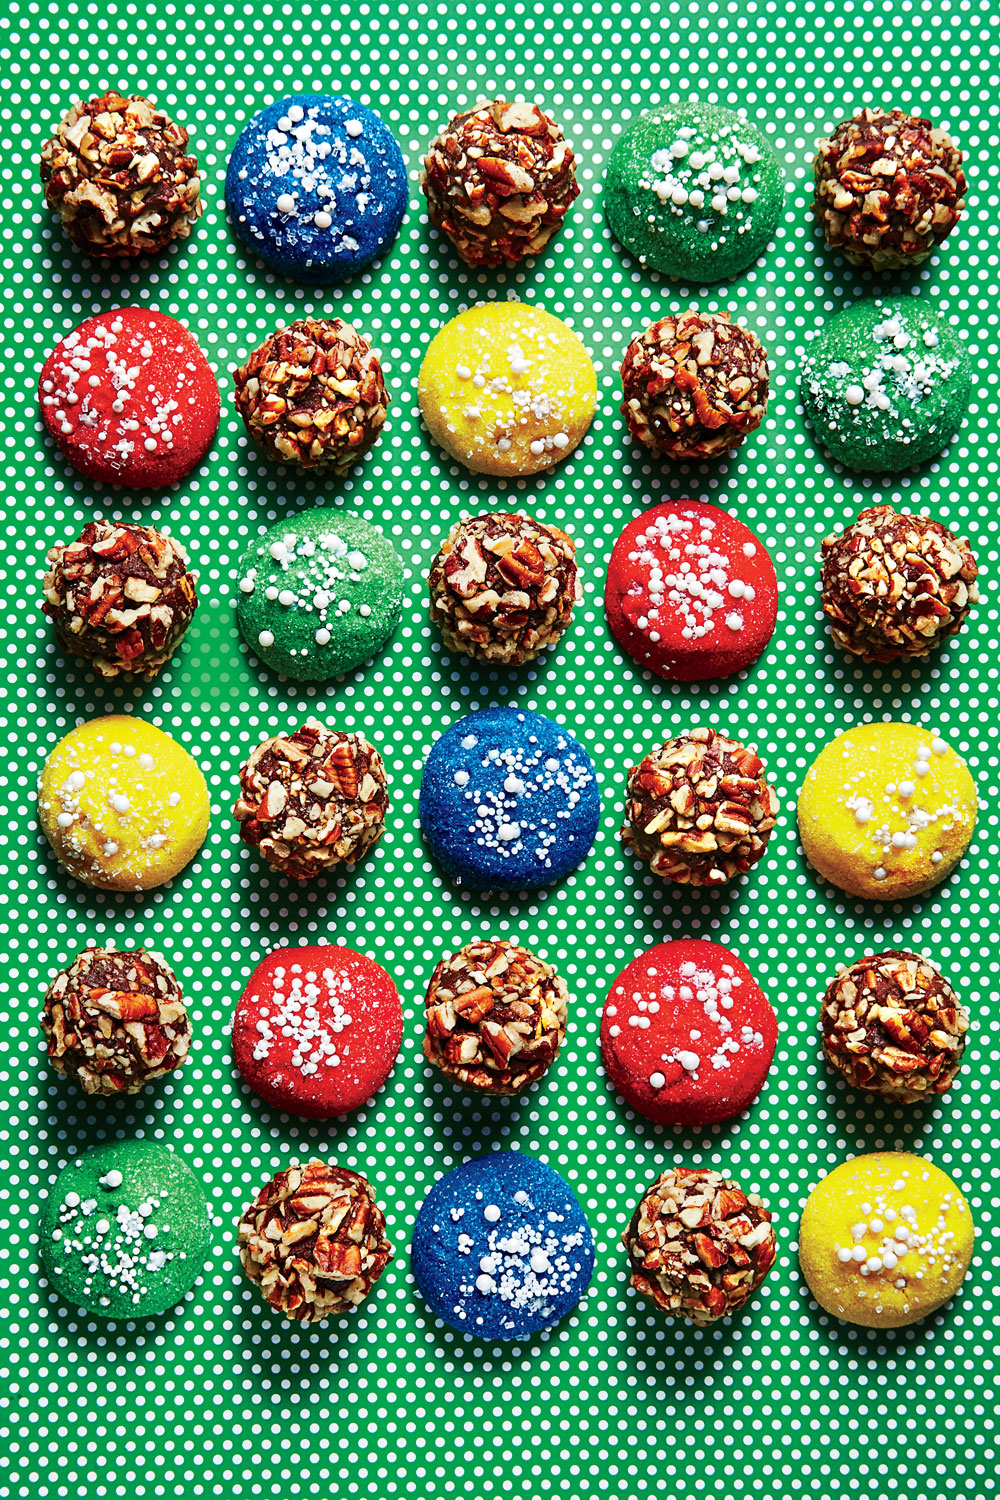 Chocolate-Bourbon-Fudge Balls image